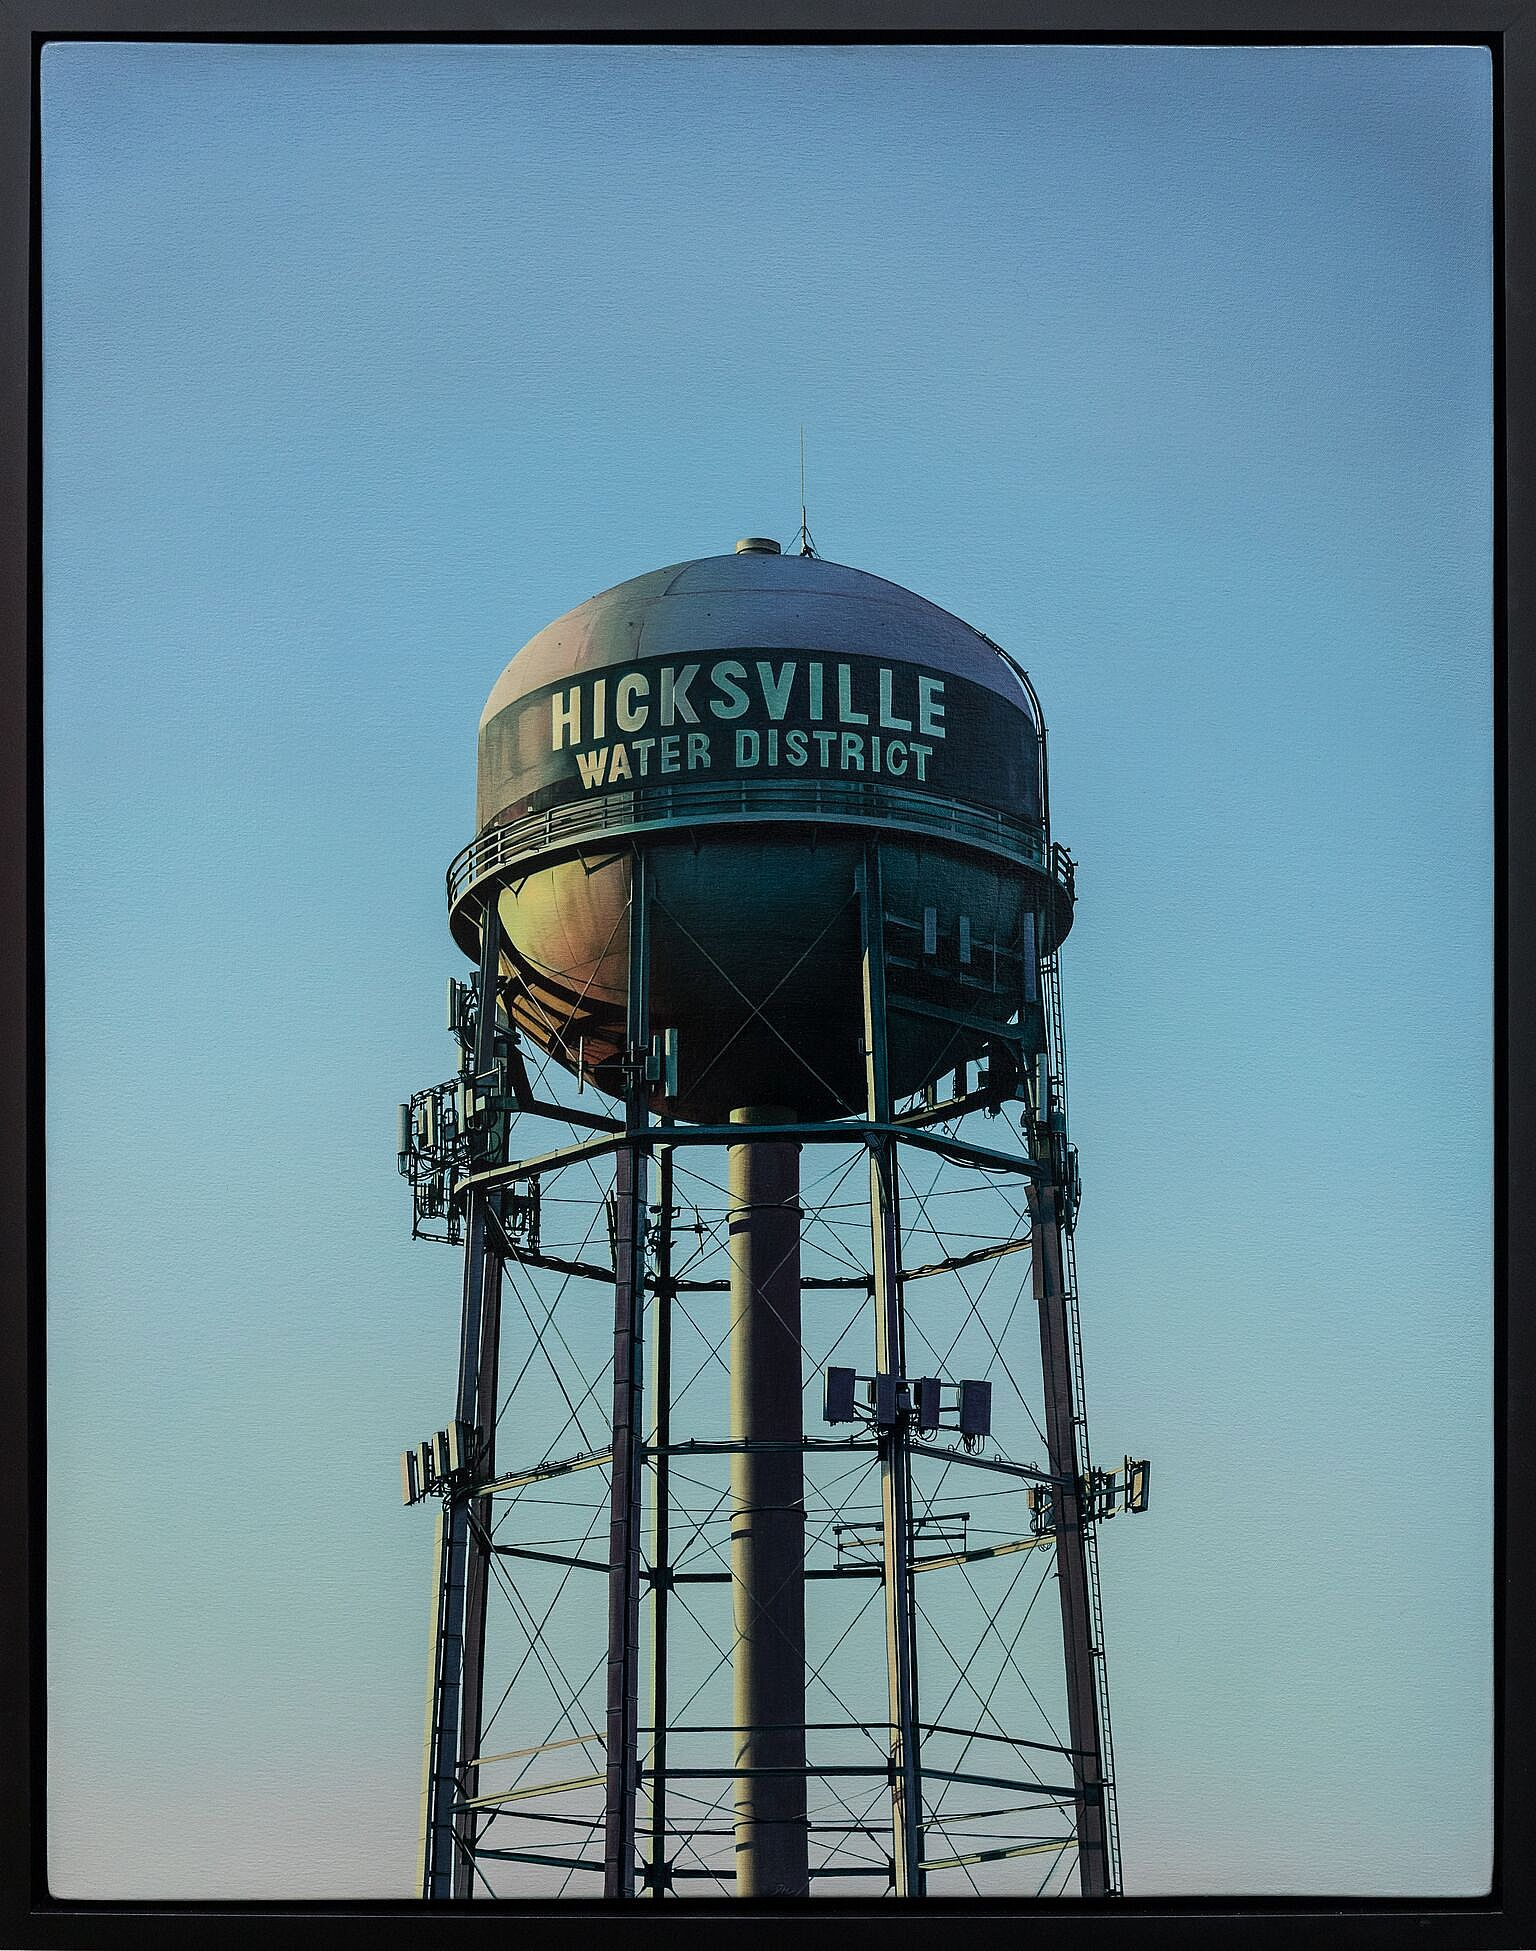 HICKSVILLE by Jack Hickey